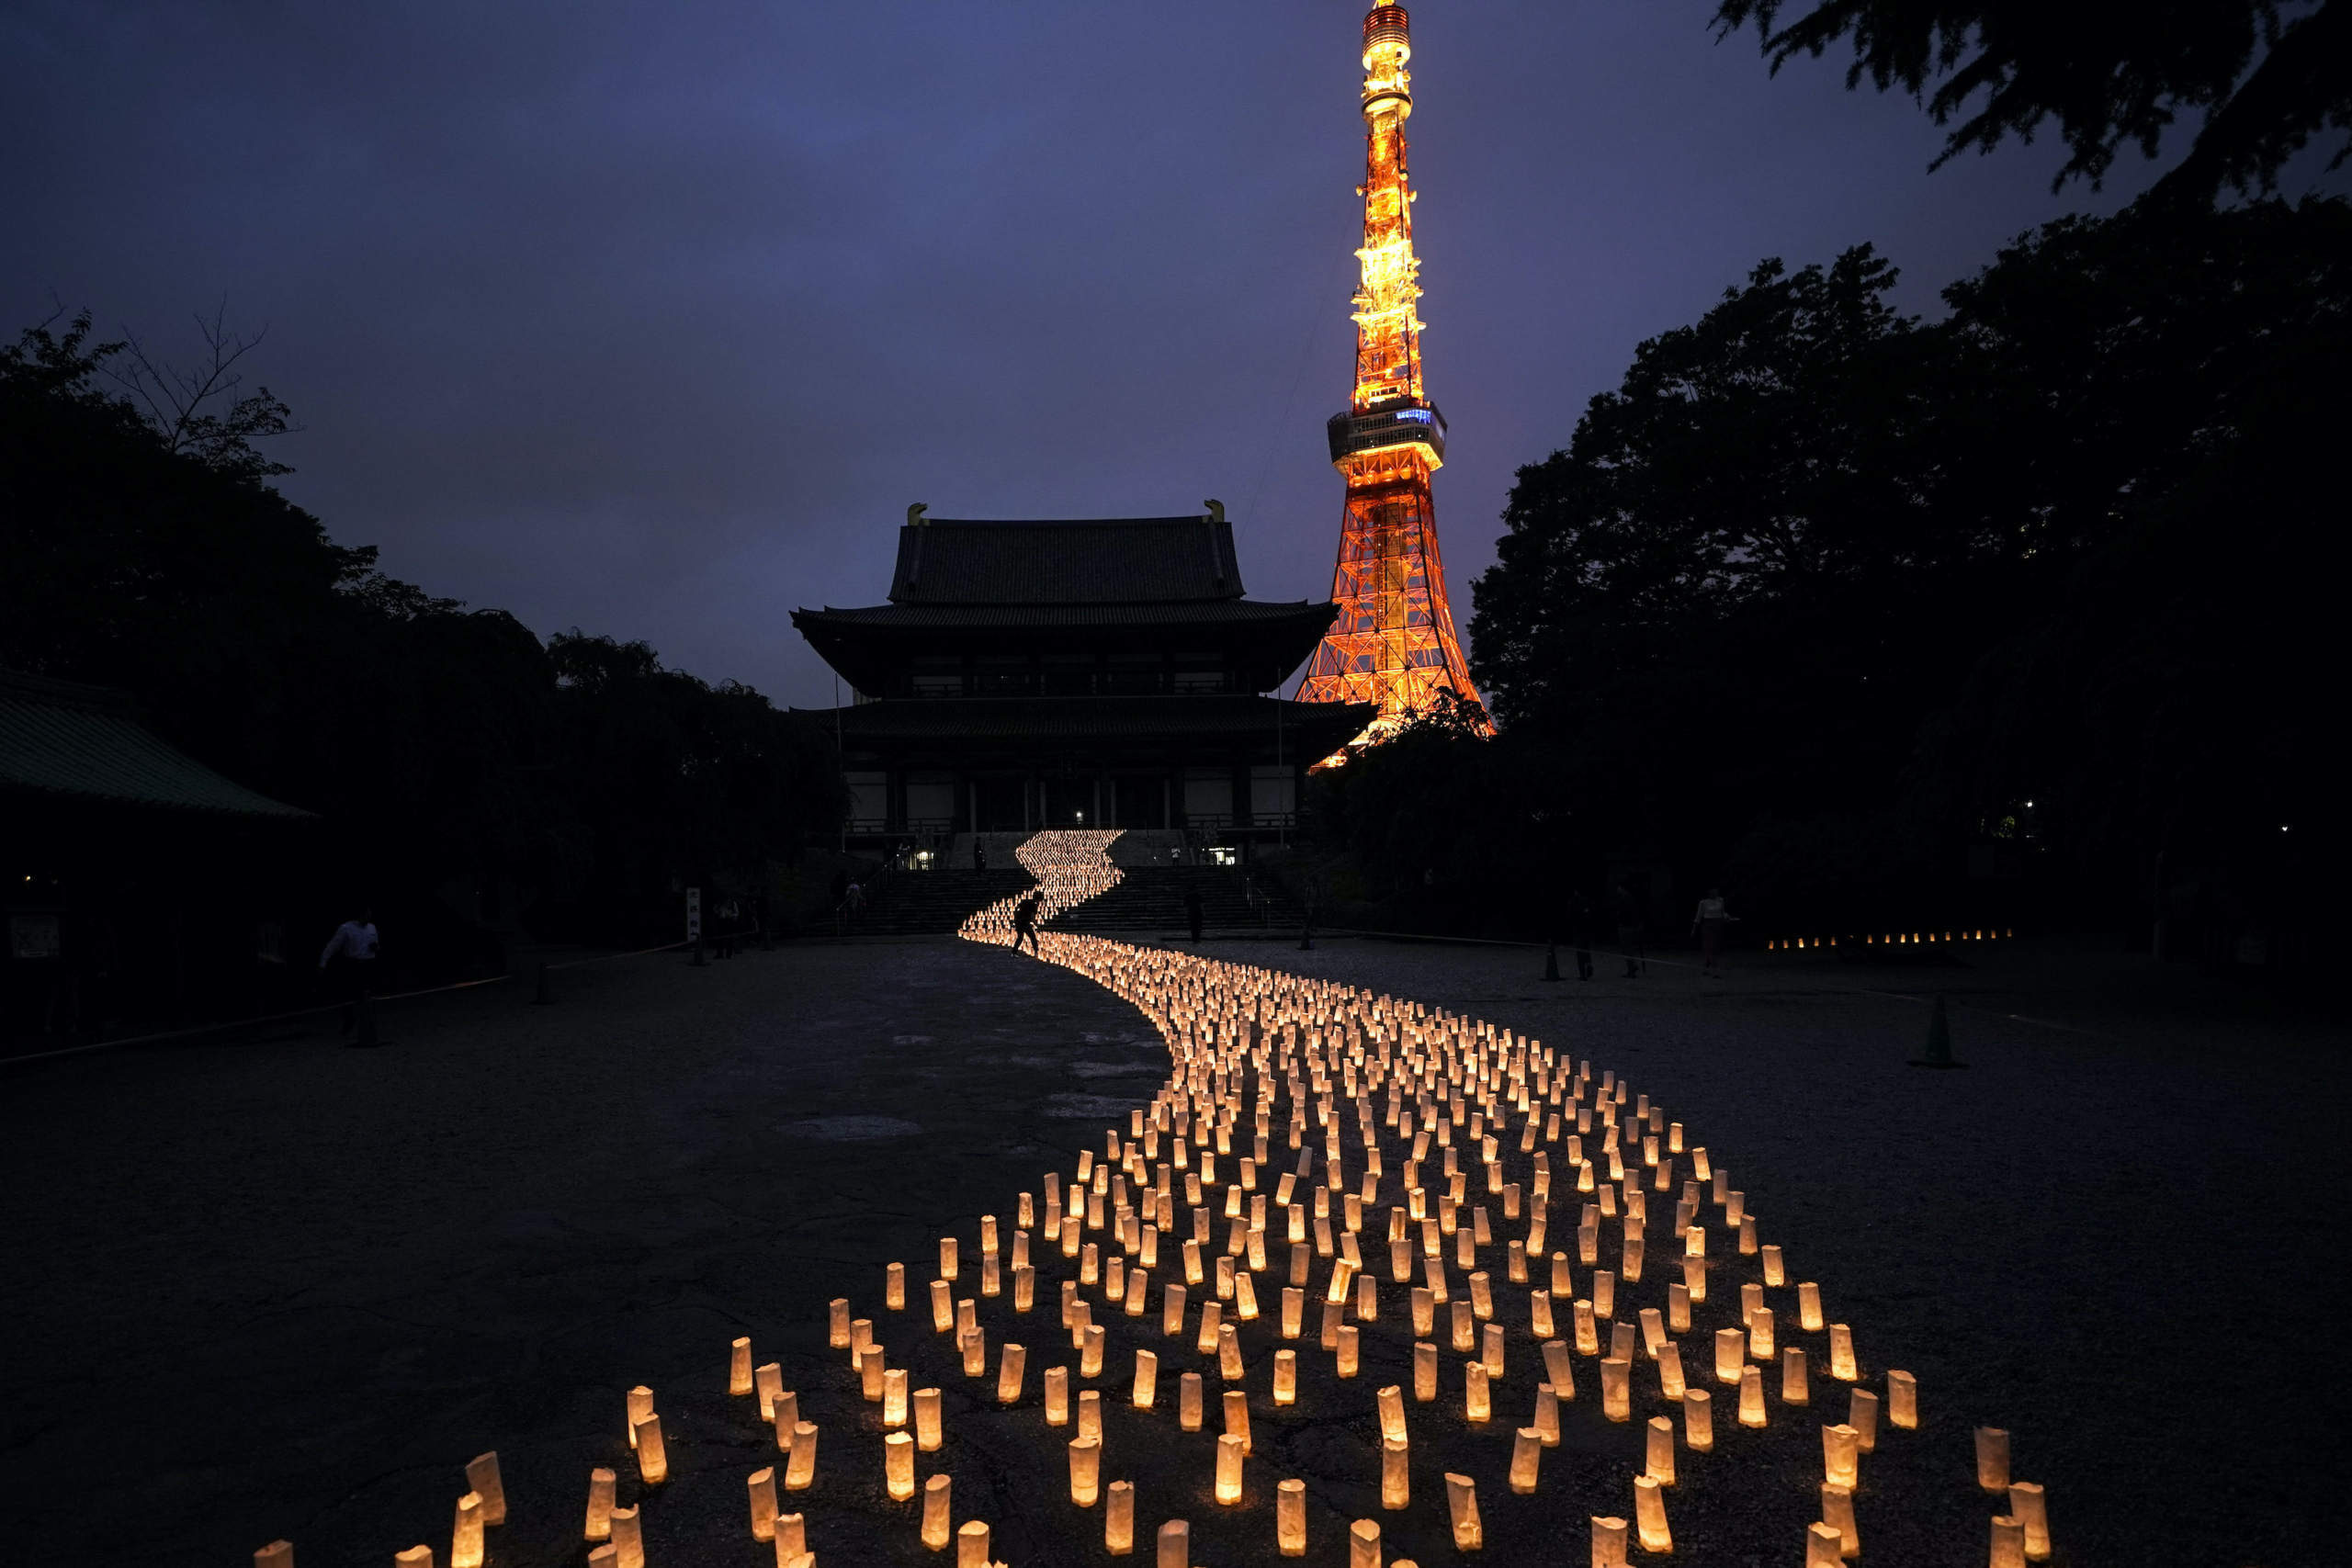 In this photo shot on Sony equipment, thousands of candles are arranged in the shape of the Milky Way to celebrate Tanabata, a Japanese star festival, at Zojoji Temple, July 5, 2019, in Tokyo. (AP Photo/Jae C. Hong)